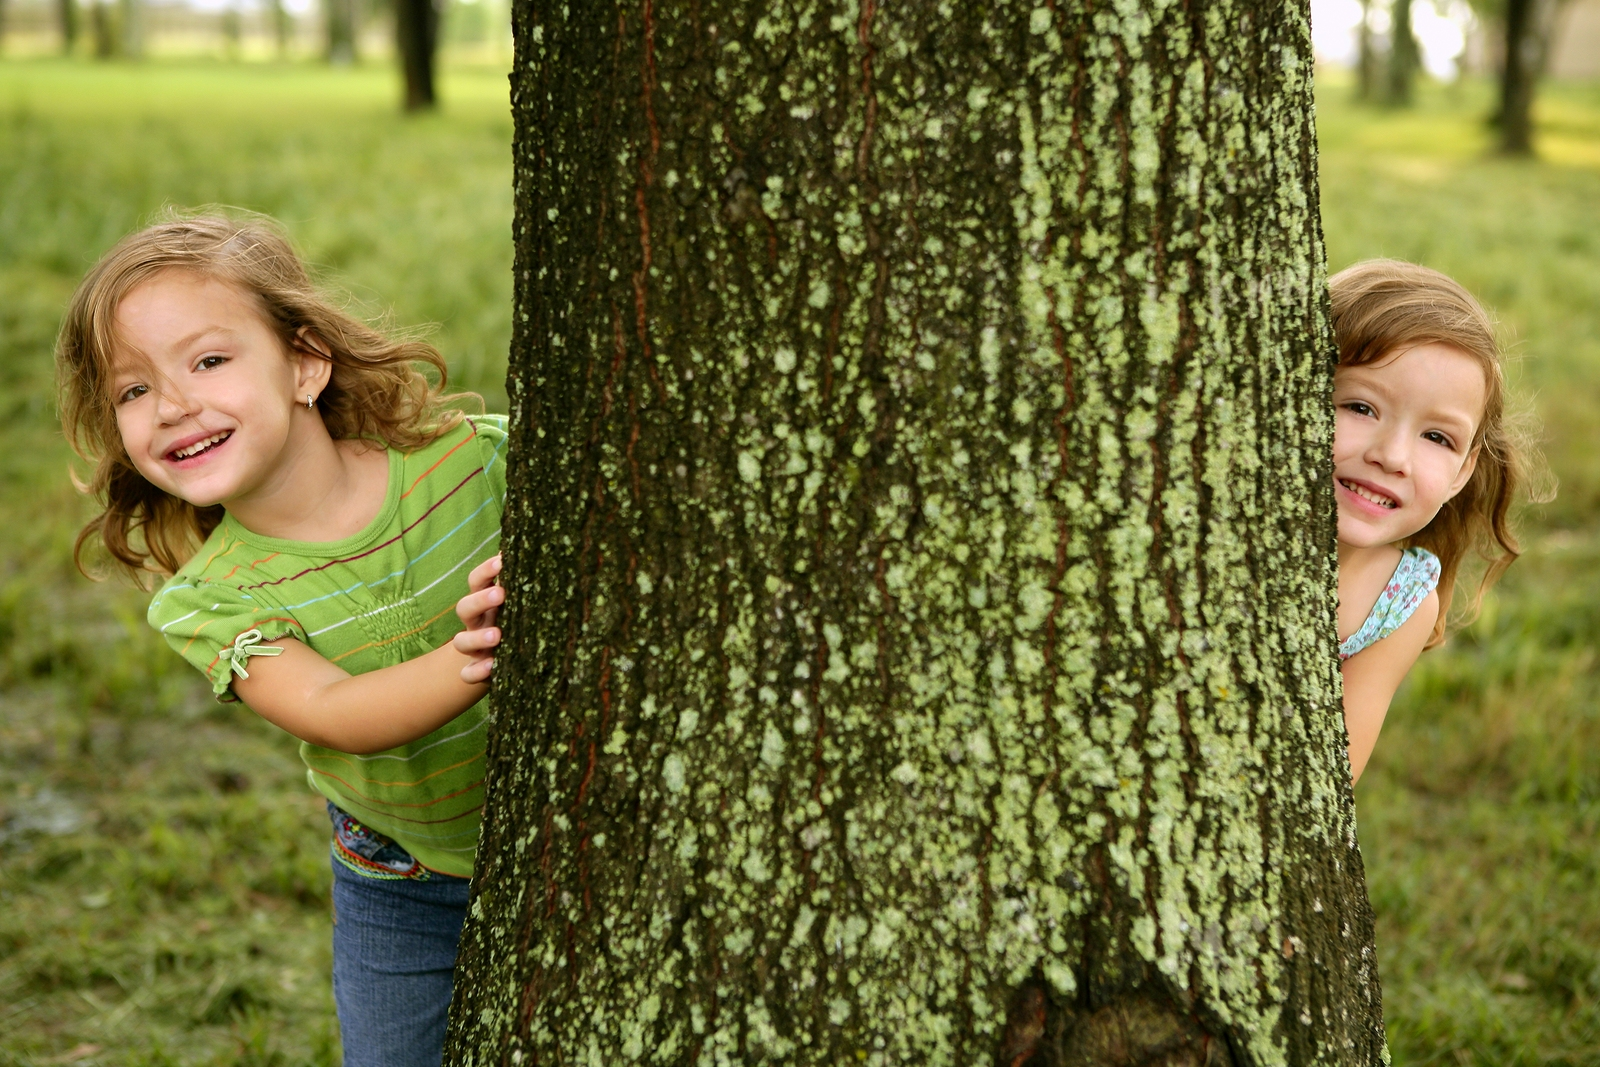 Two twin girls playing hide and seek behind a tree